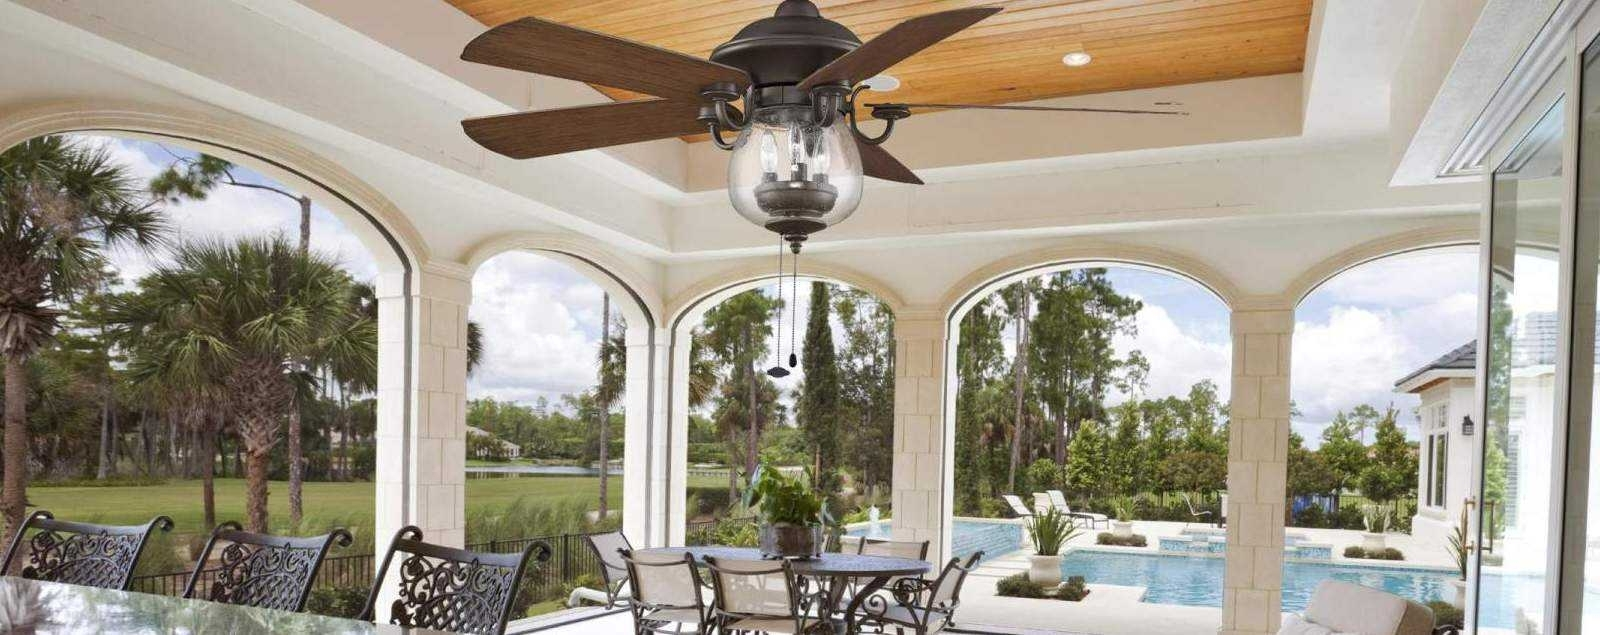 Most Up To Date Outdoor Patio Ceiling Fans With Lights Regarding Patio Ceiling Fans With Lights Images Also Enchanting Porch Outside (View 8 of 20)